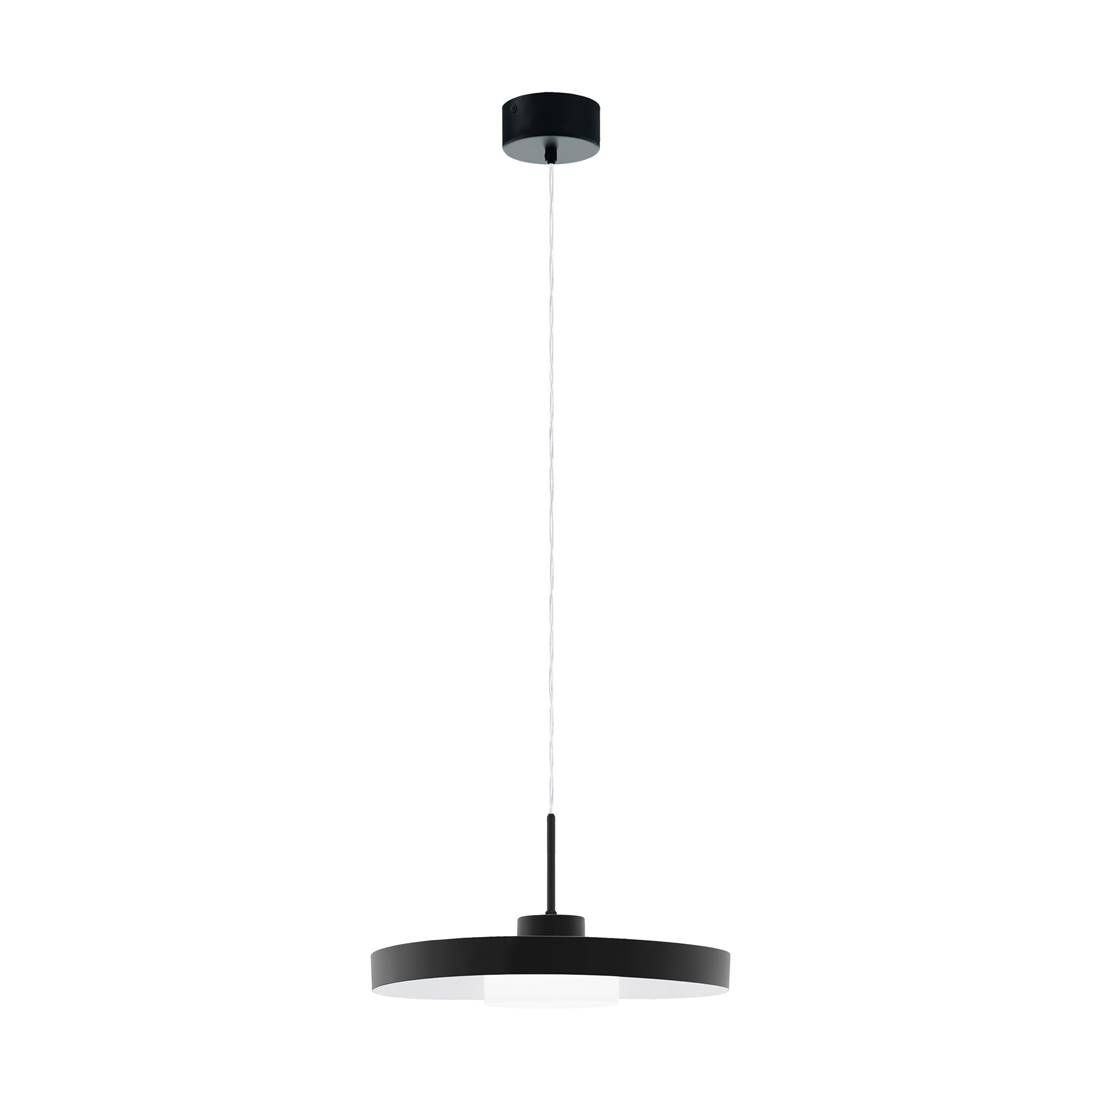 Led Pendelleuchte Alpicella Schwarz Satiniert O40cm H 150cm Lamp Decor Interior Lighting Indoor Lighting